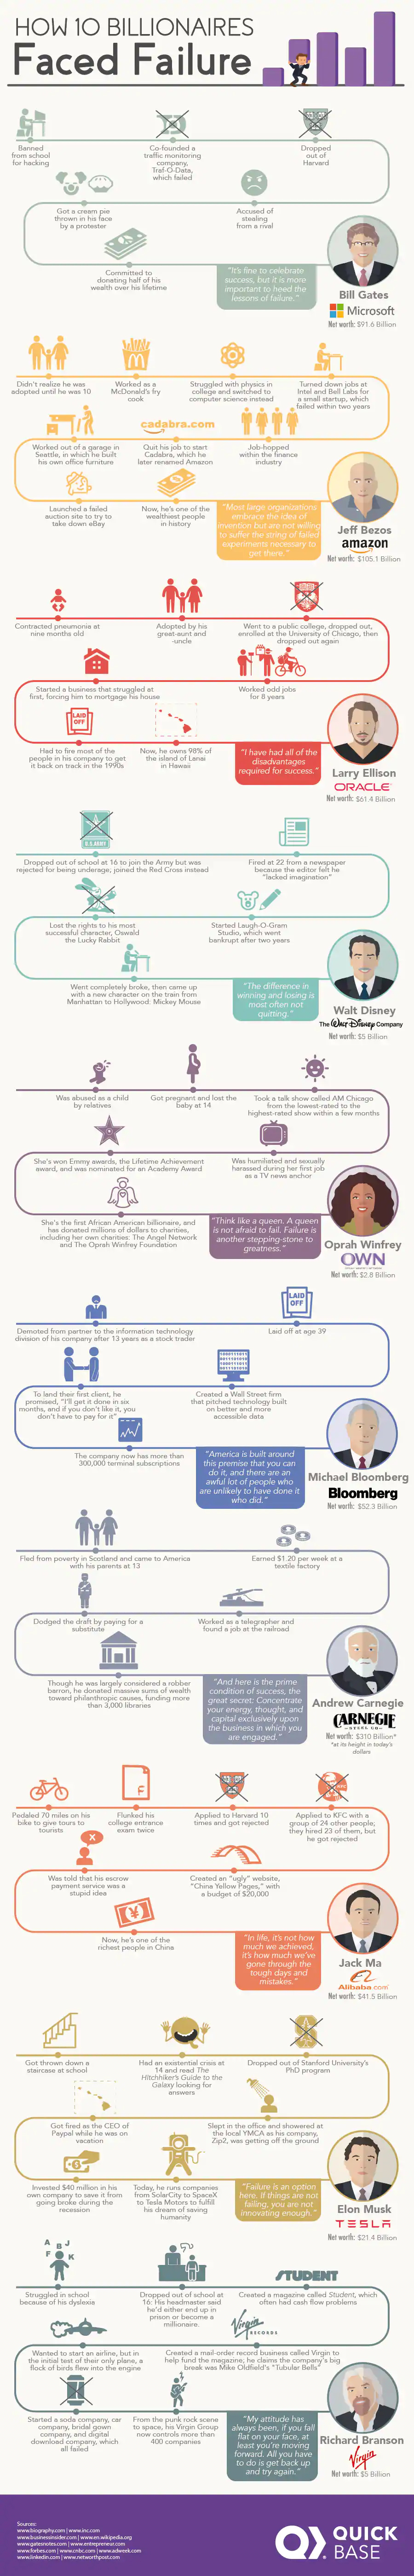 The Rocky Road of Failure and How 10 Billionaires Faced and Overcame the Pitfalls - Infographic